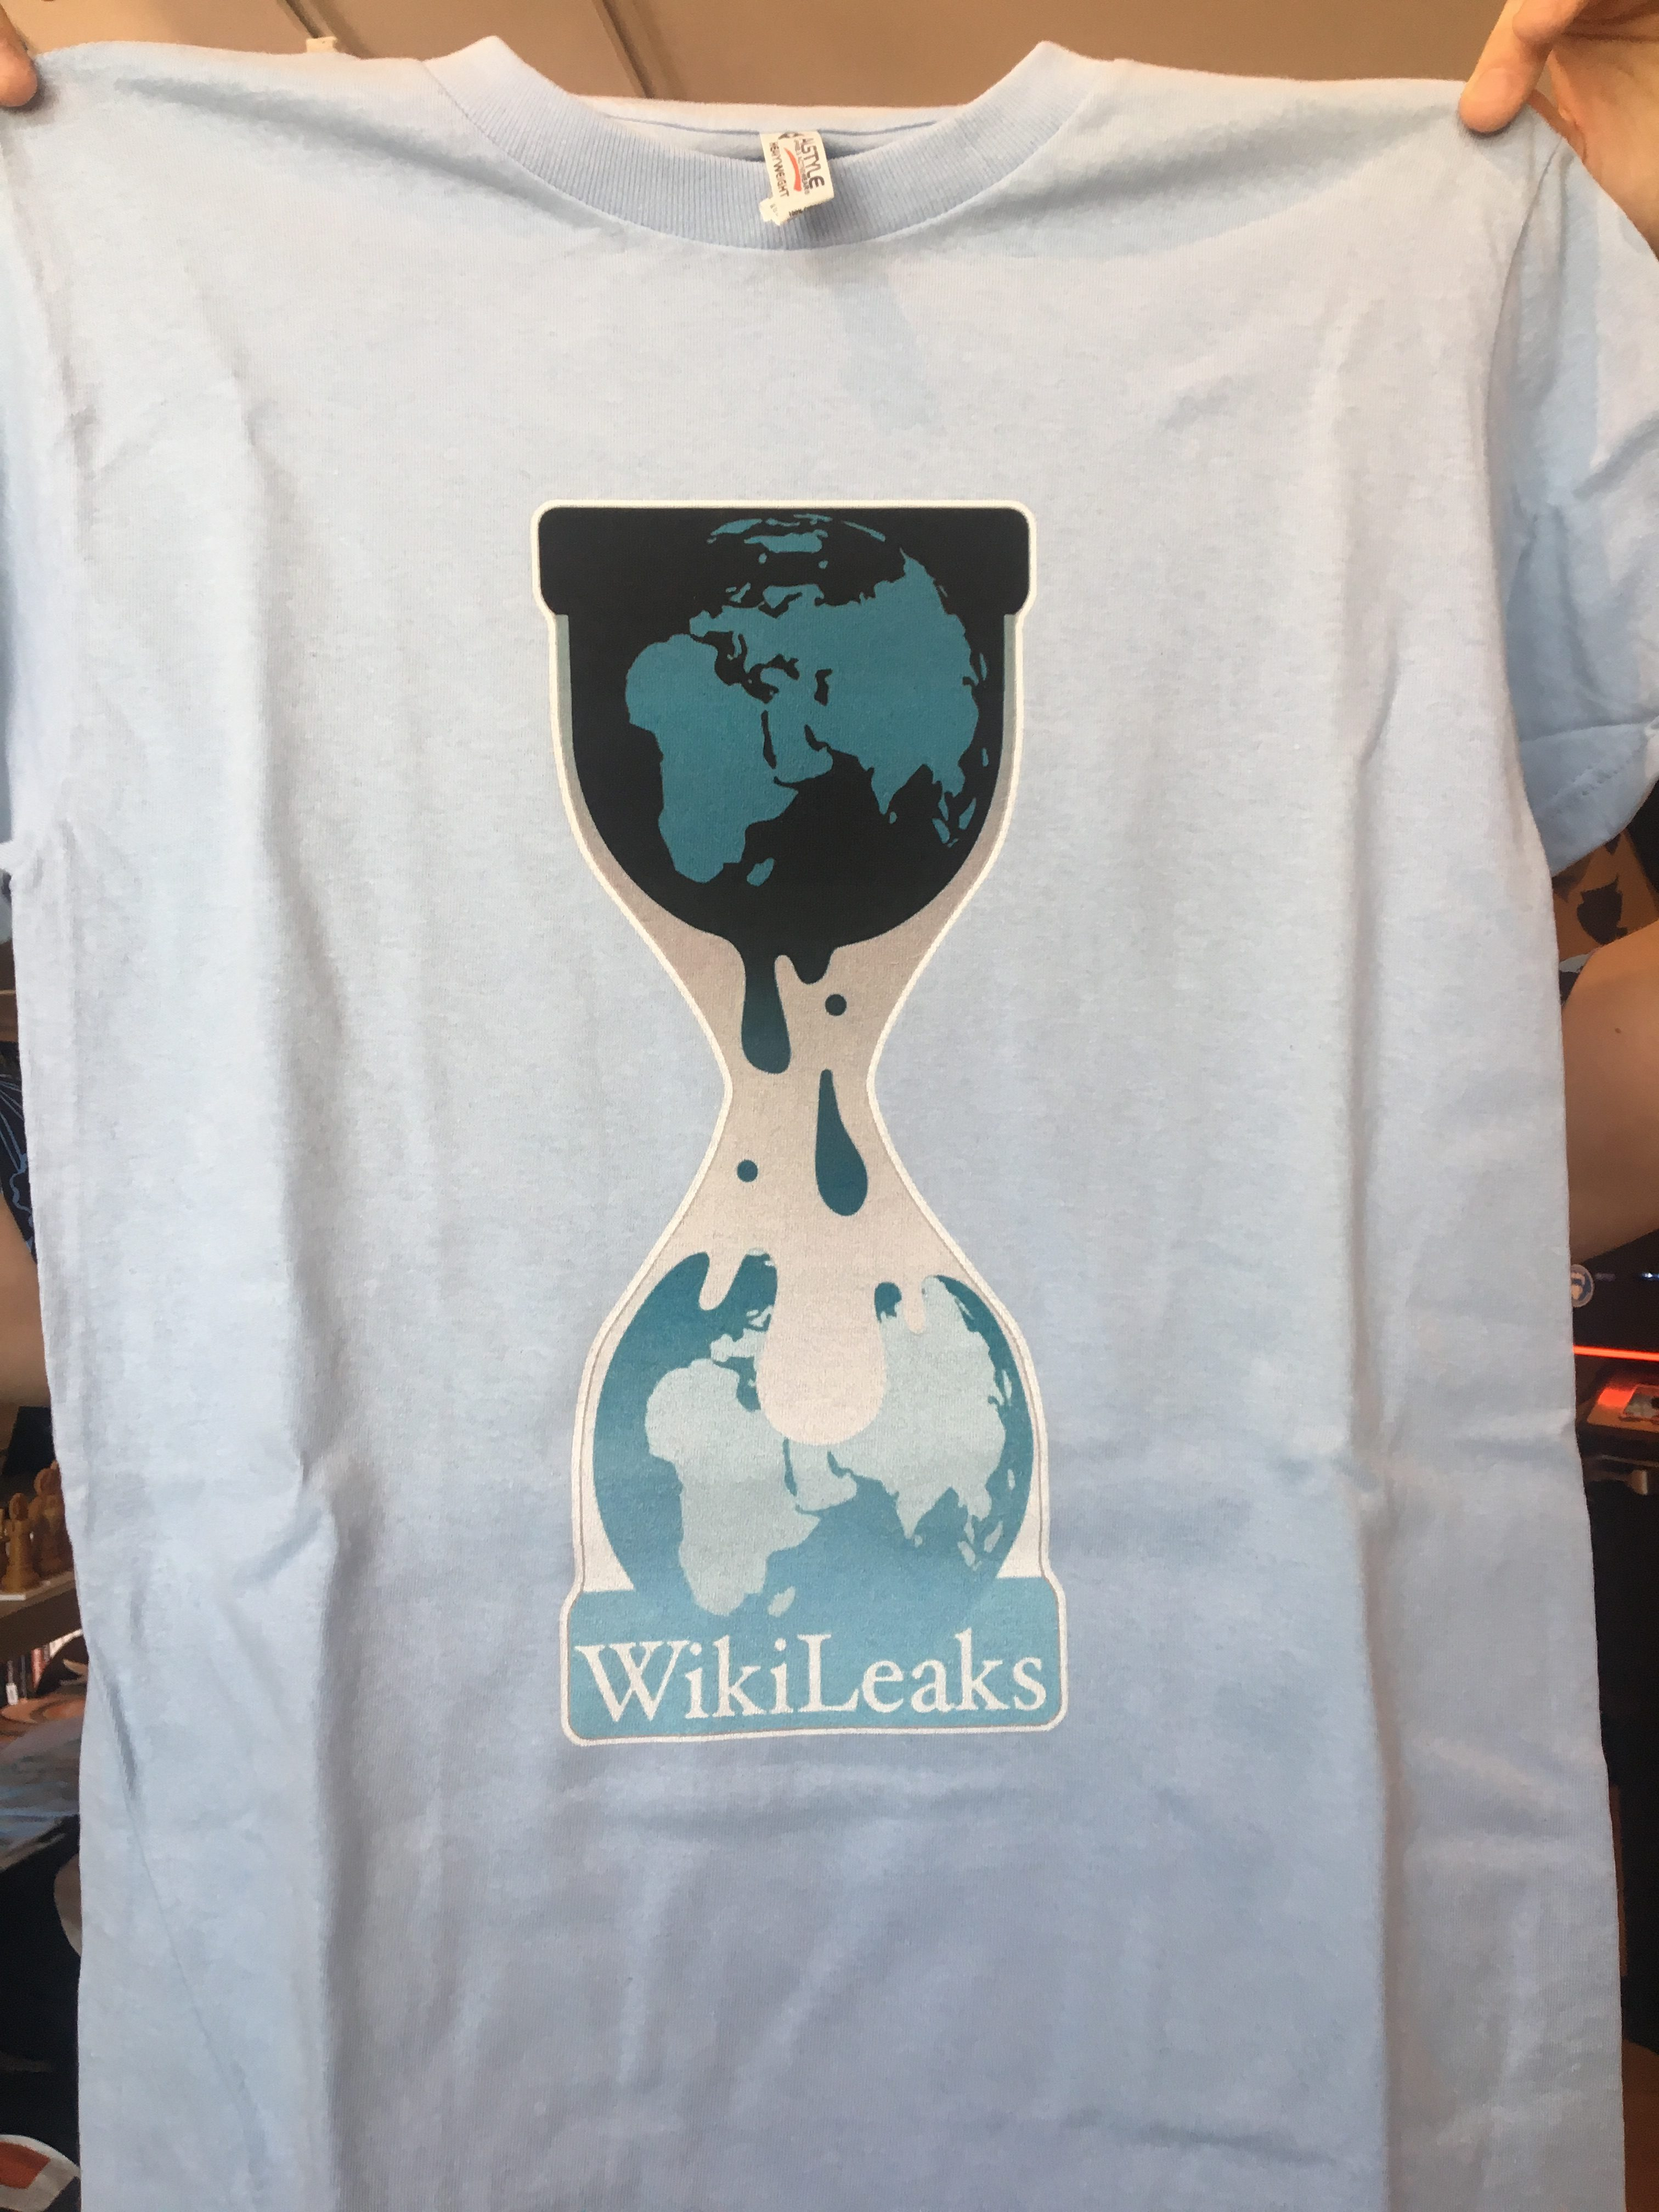 WikiLeaks Merchandise at the Shoppe